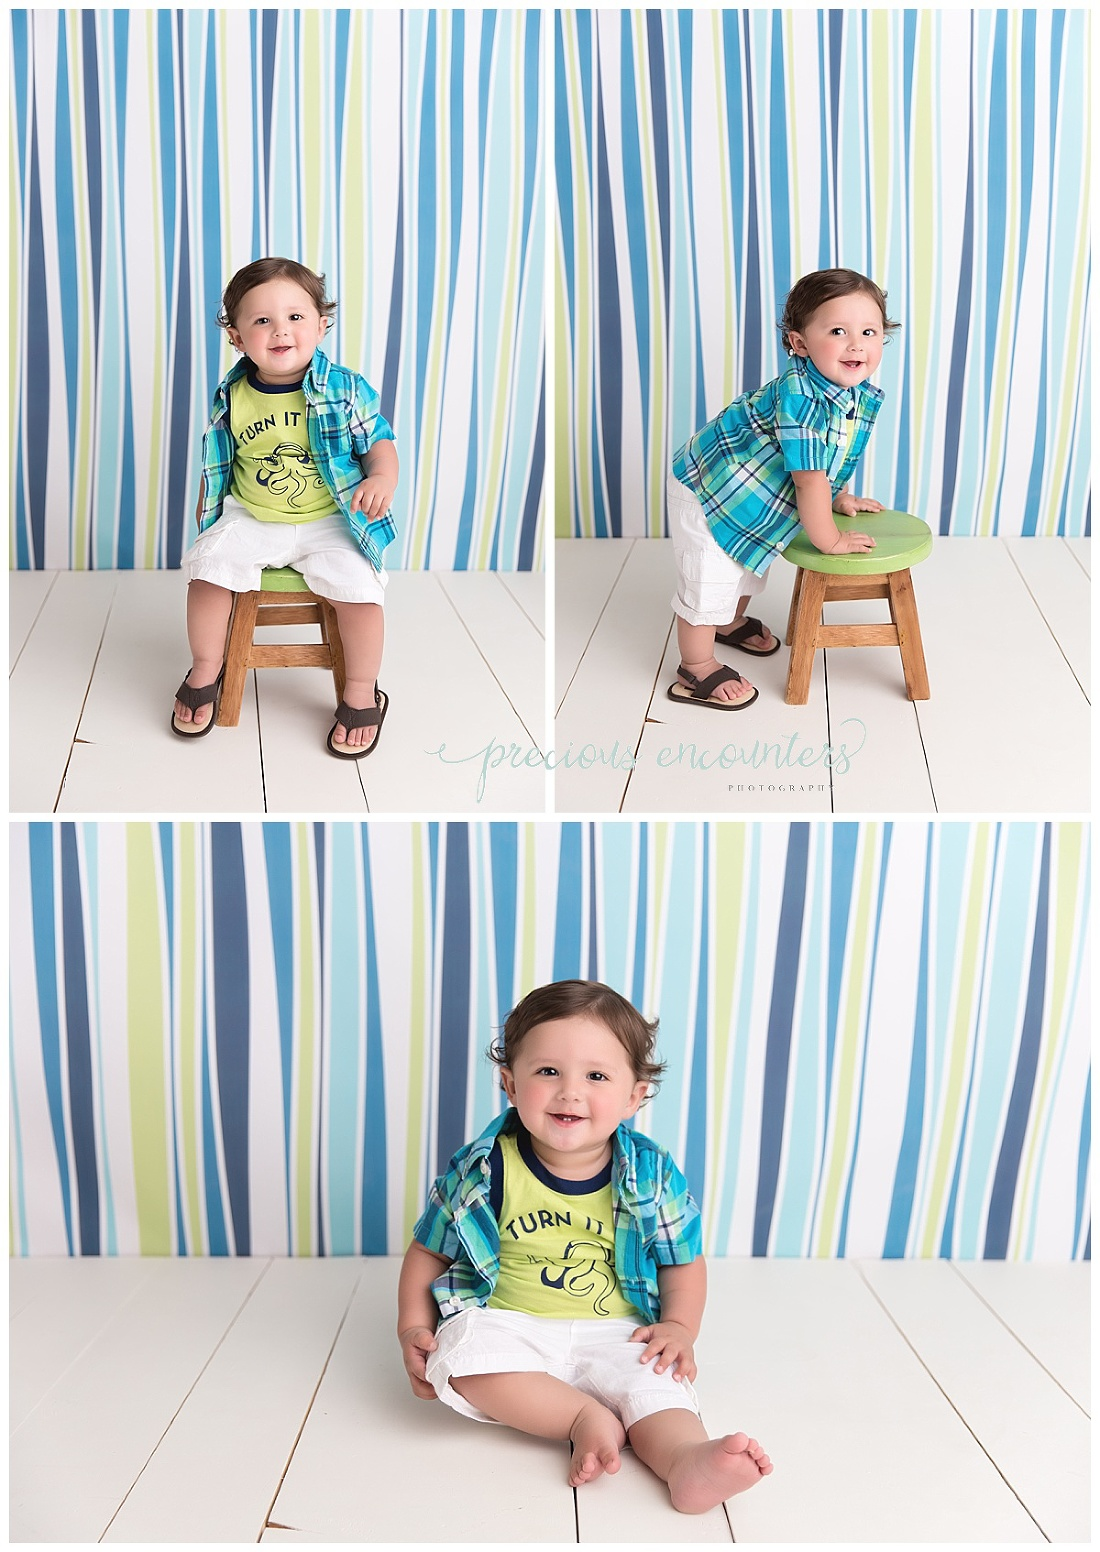 green, blue, yellow, boy, stripped, backdrop